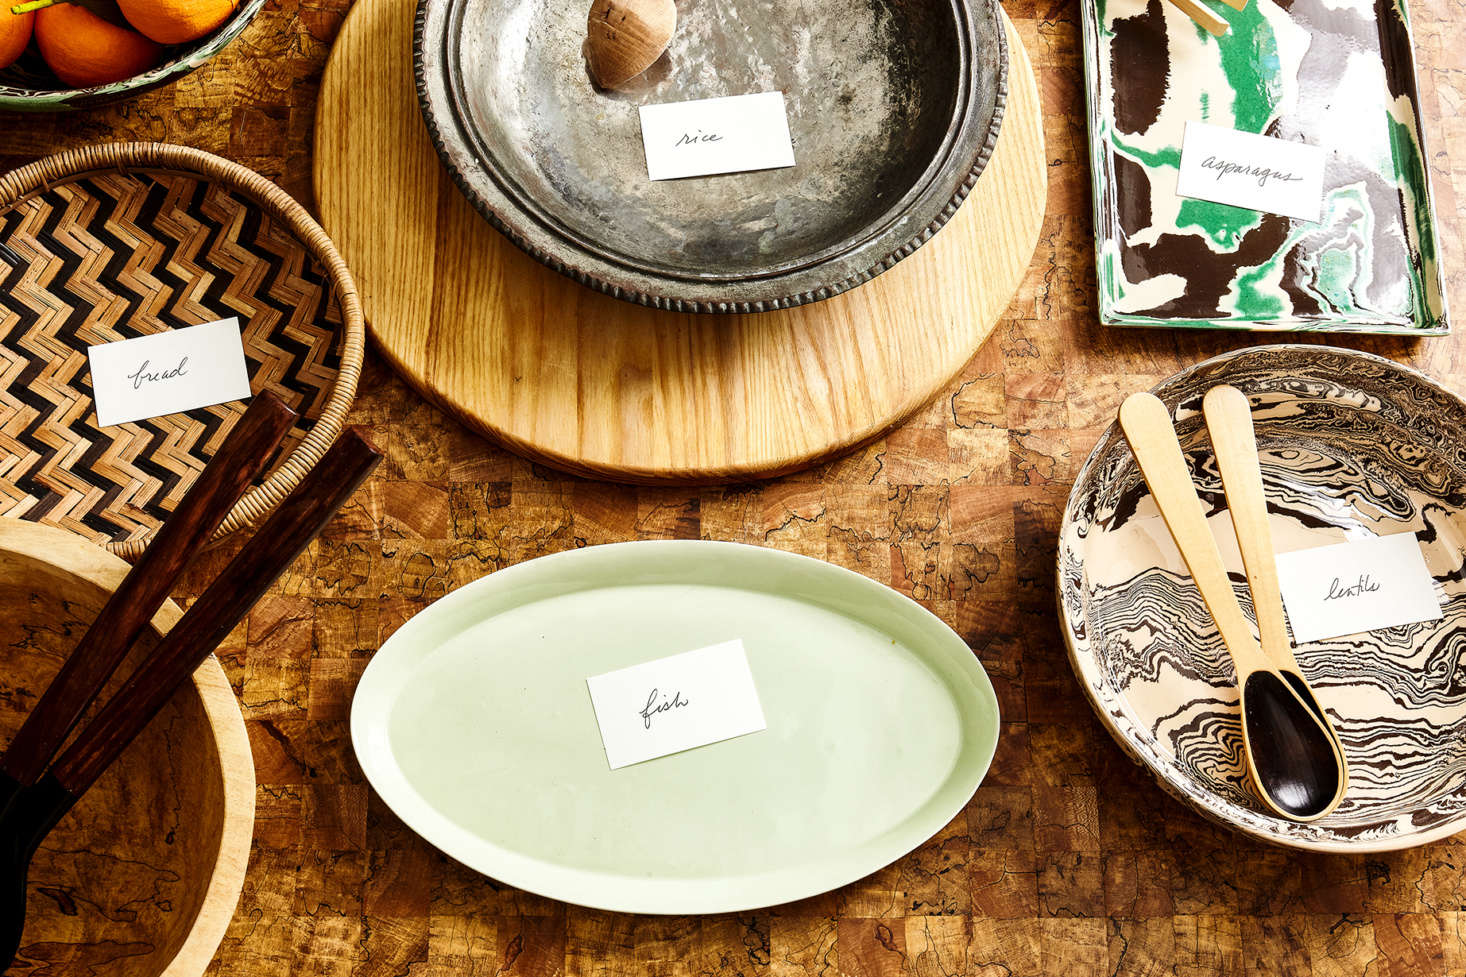 Label your serving platters ahead of time, and more stress-free holiday hacks inExpert Advice:  Stress-Free Entertaining Tips for the Hostess Procrastinaire. Photograph by Heidi&#8